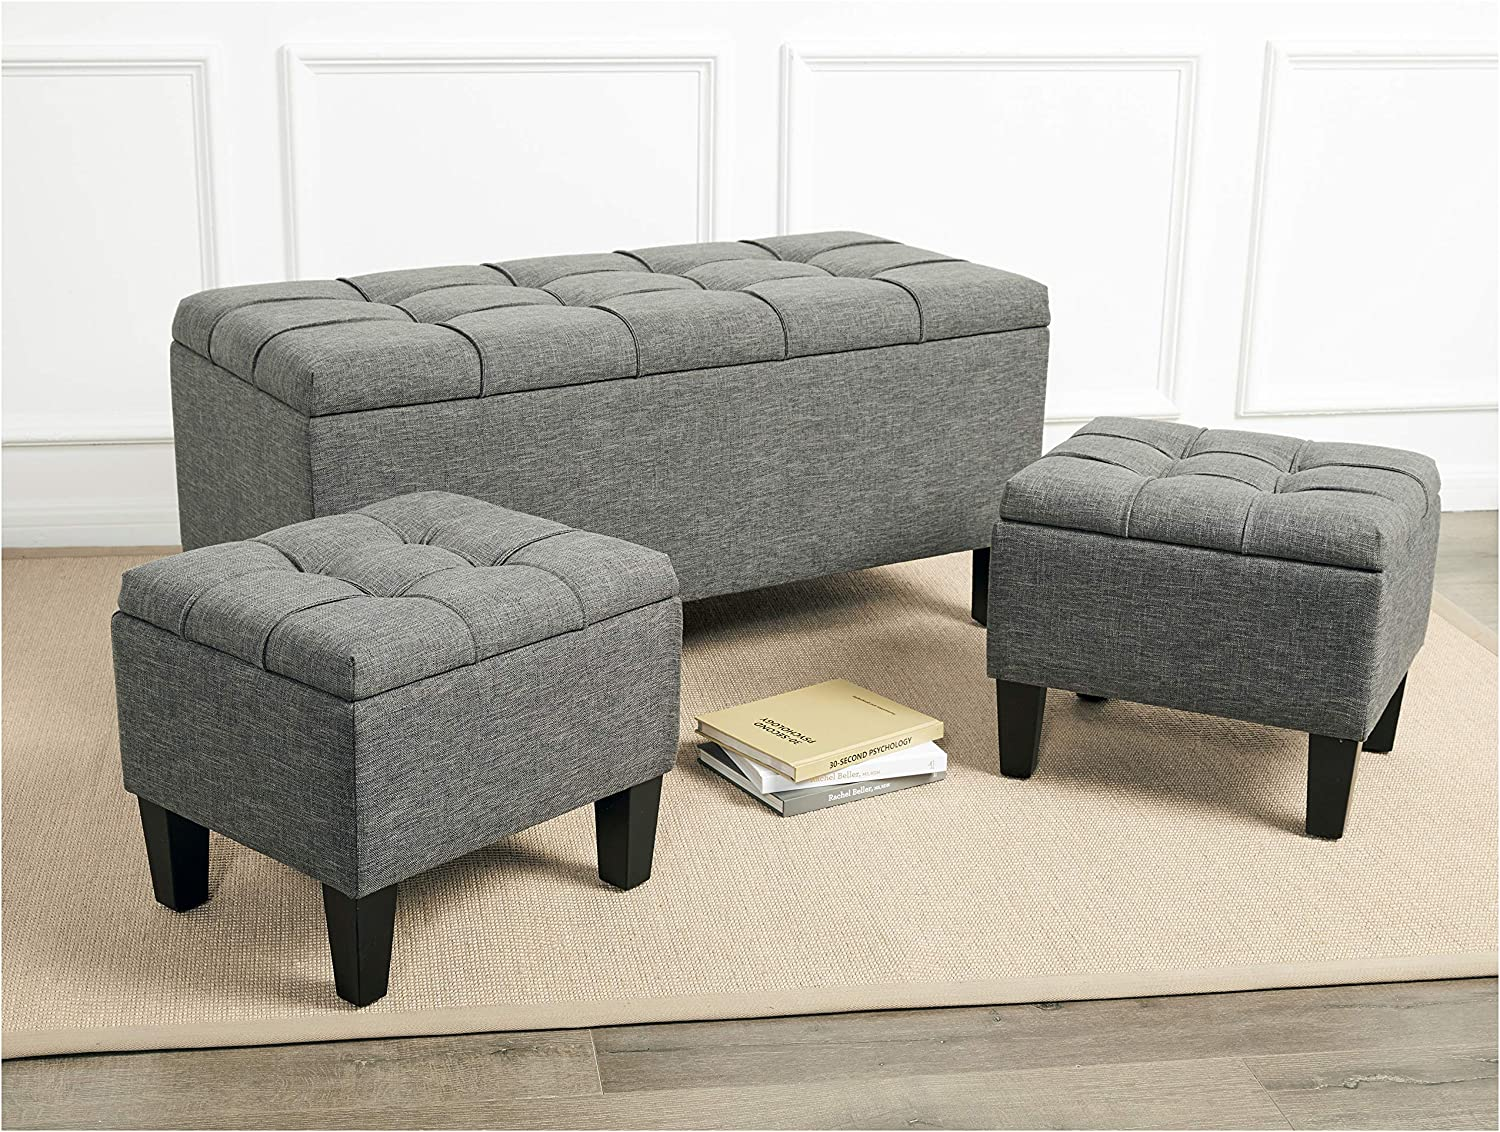 First Hill Bergen 3-Piece Storage Ottoman Bench Set with Fabric Upholstery, Iron Gray